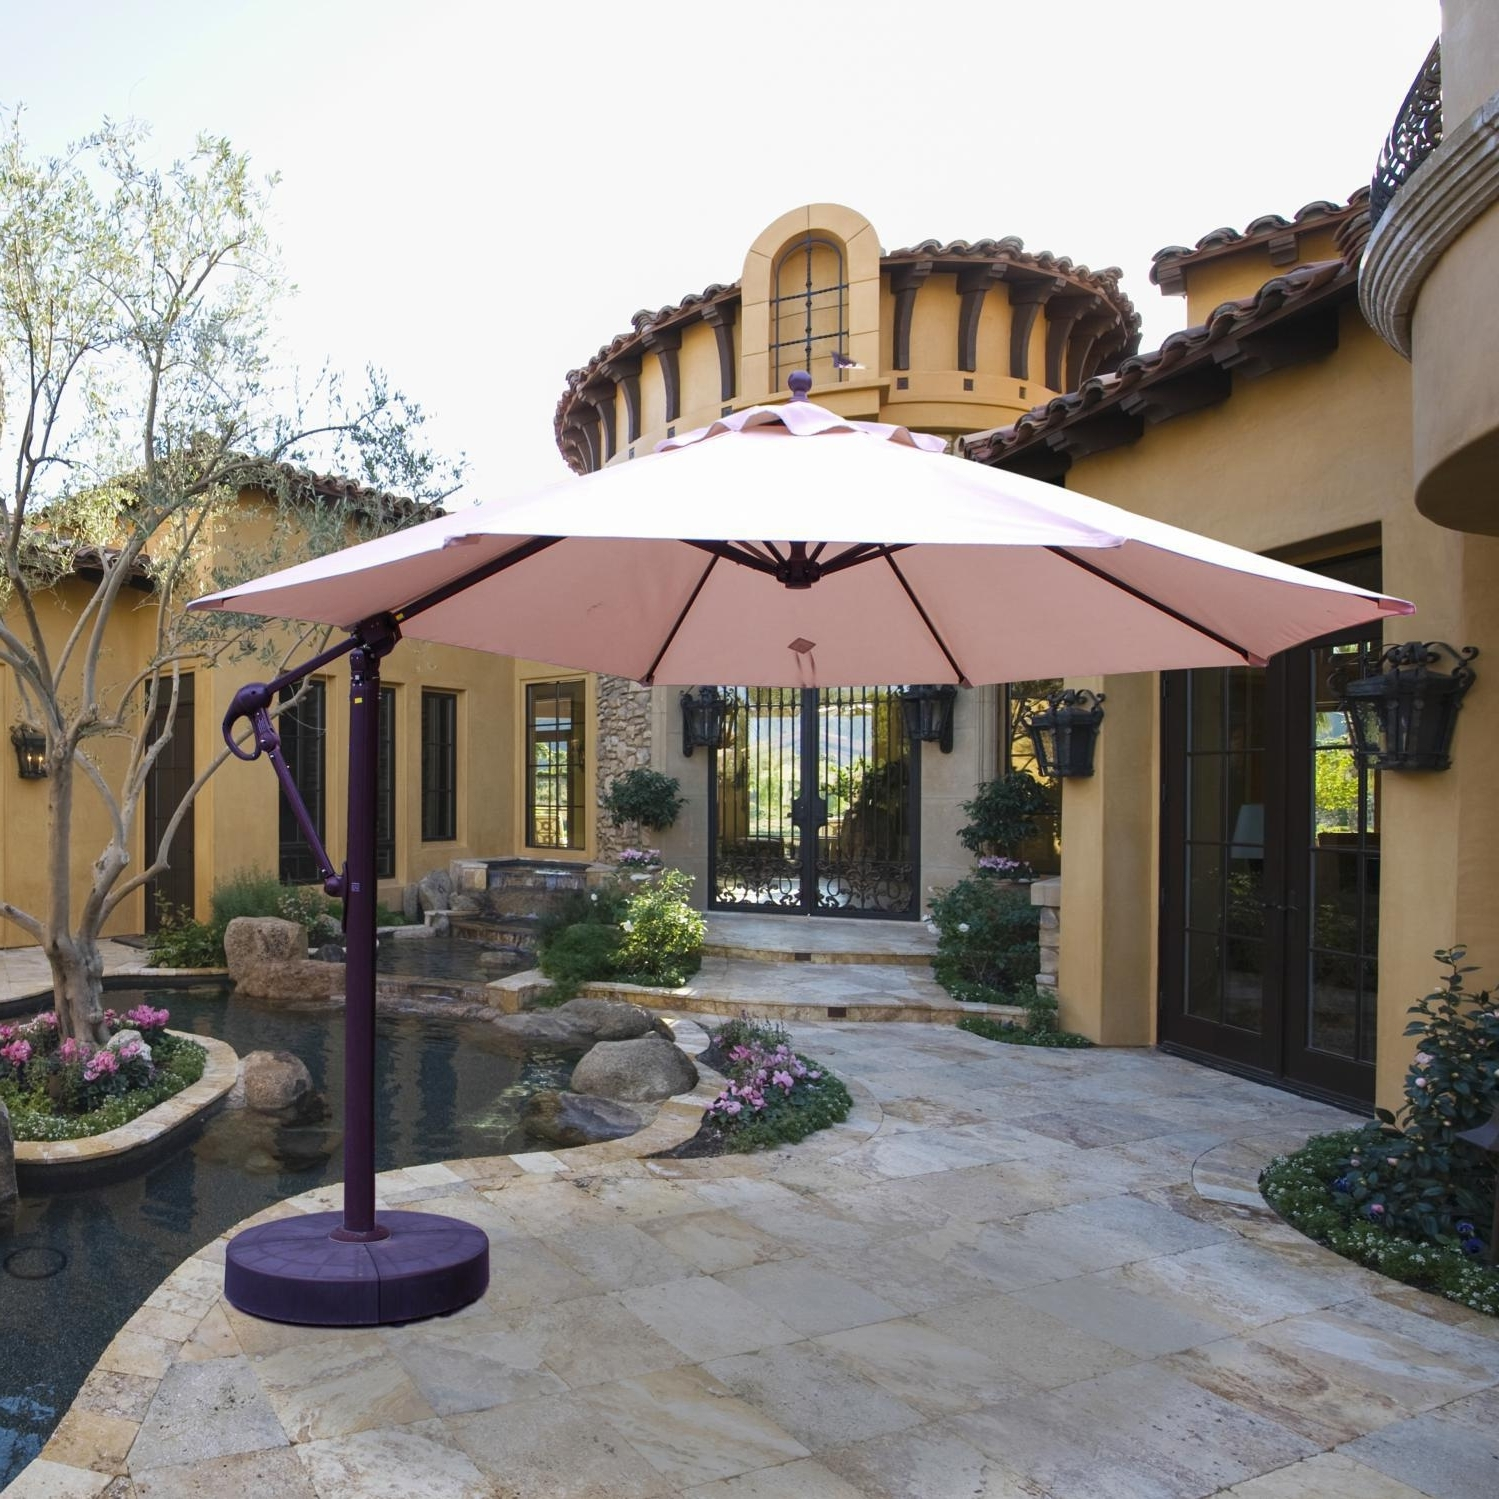 Galtech 11 Ft Aluminum Cantilever Patio Umbrella With Easy Lift And Throughout Well Known 11 Ft Patio Umbrellas (View 10 of 20)